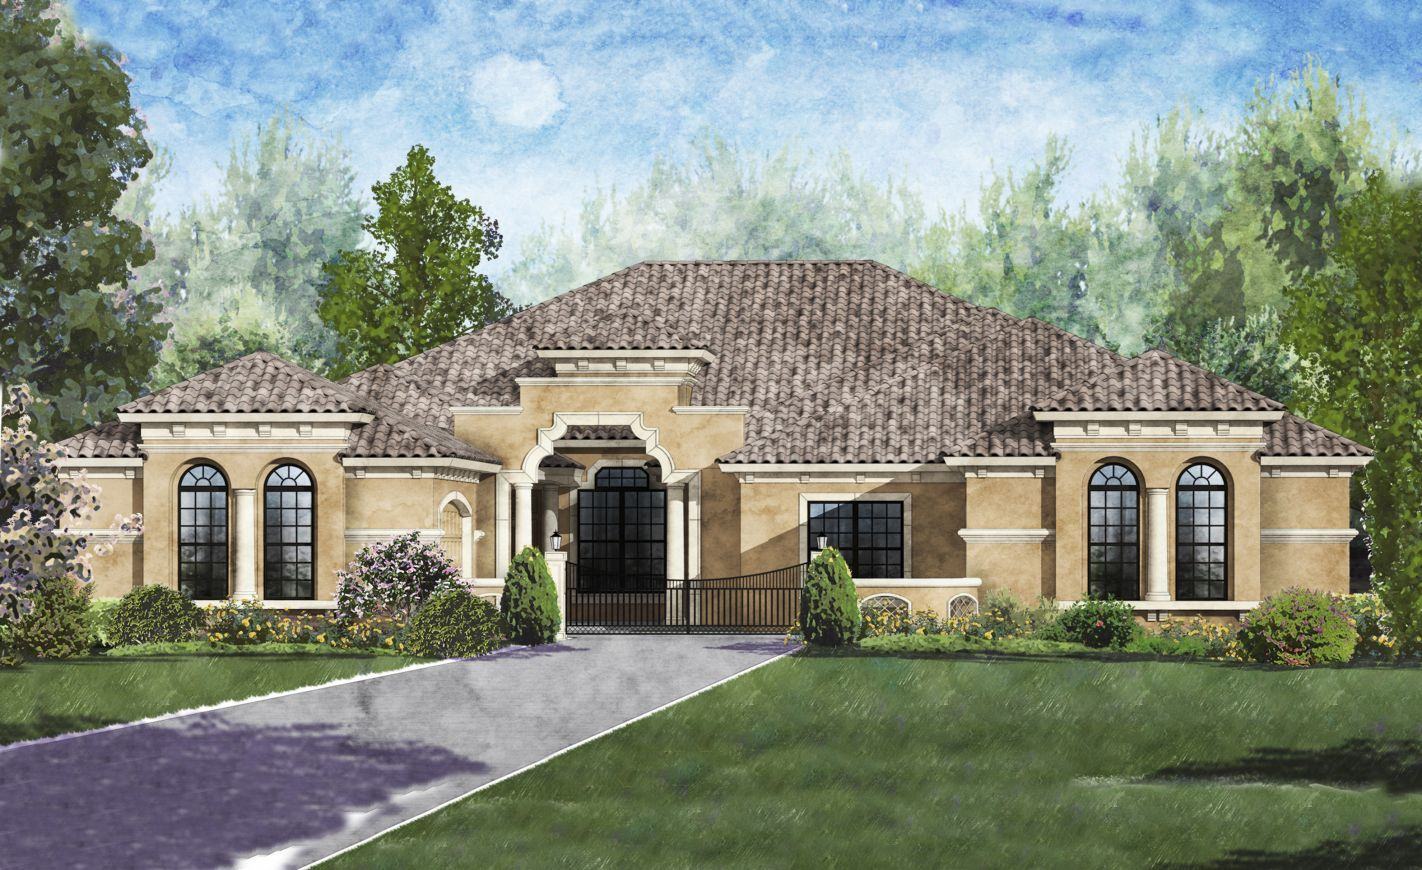 95211 Clubhouse Road, Amelia Island, FL Homes & Land - Real Estate